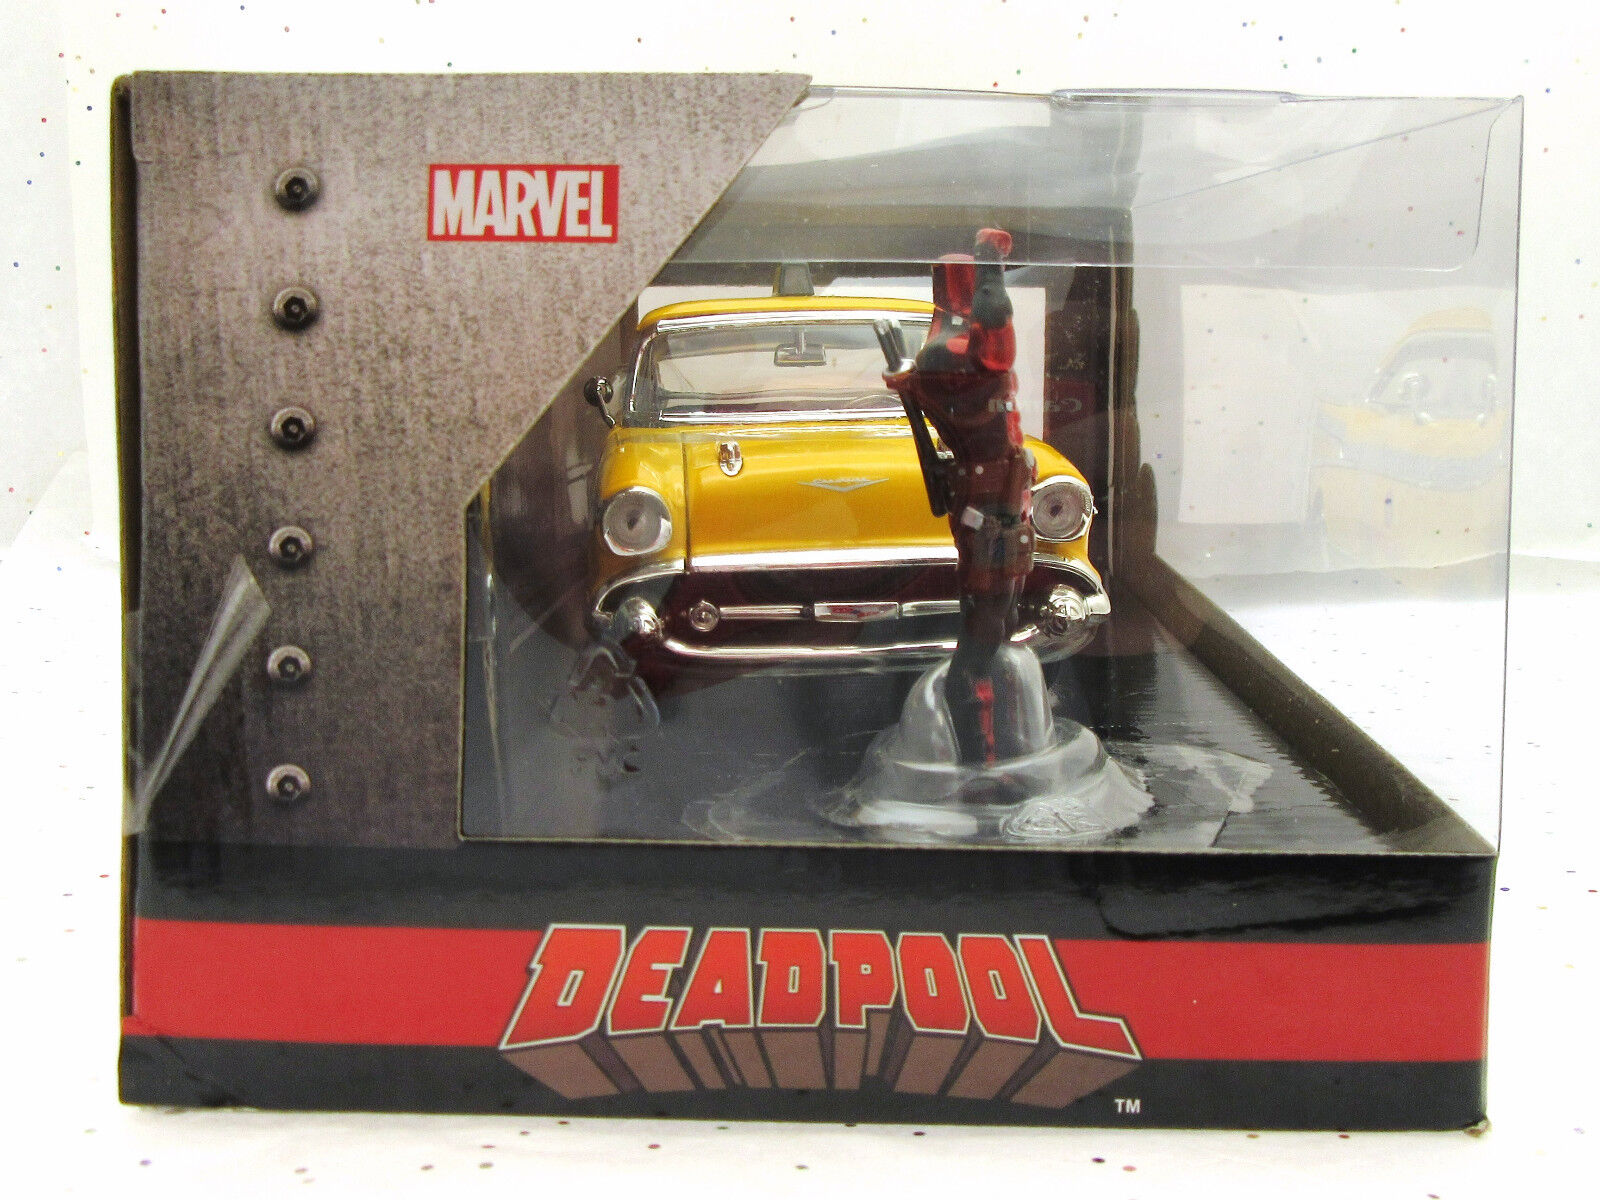 Deadpool  57 57 57 Chevy Bel Aire Taxi  Metálicos Diecast Coche  Marvel 072193